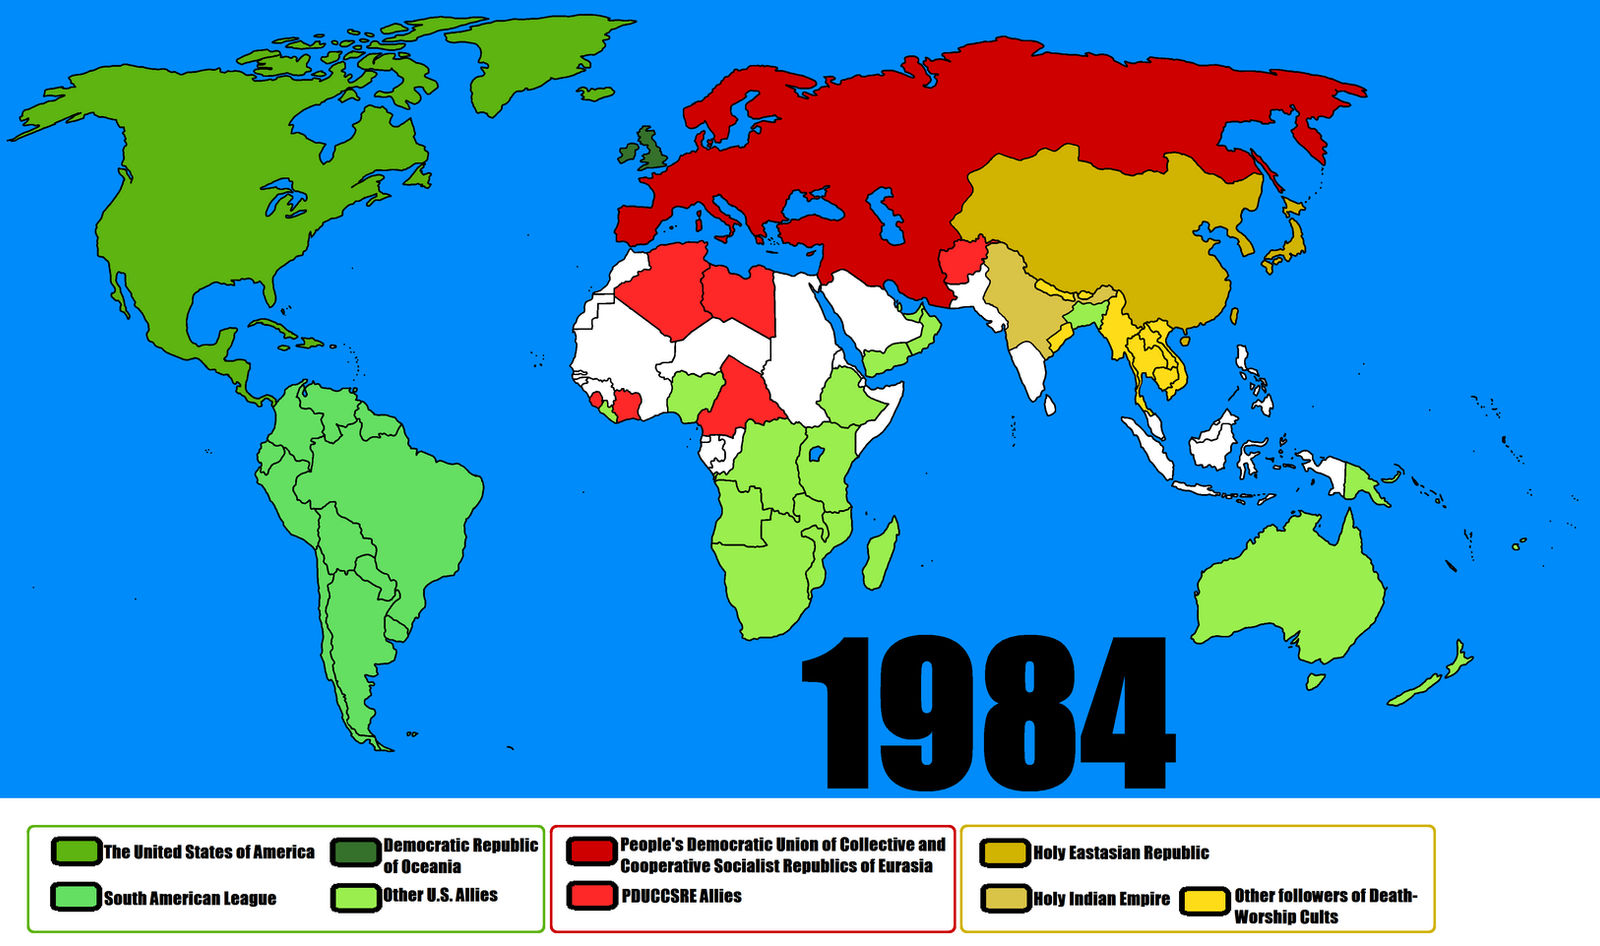 Realistic 1984 by Goliath-Maps on DeviantArt